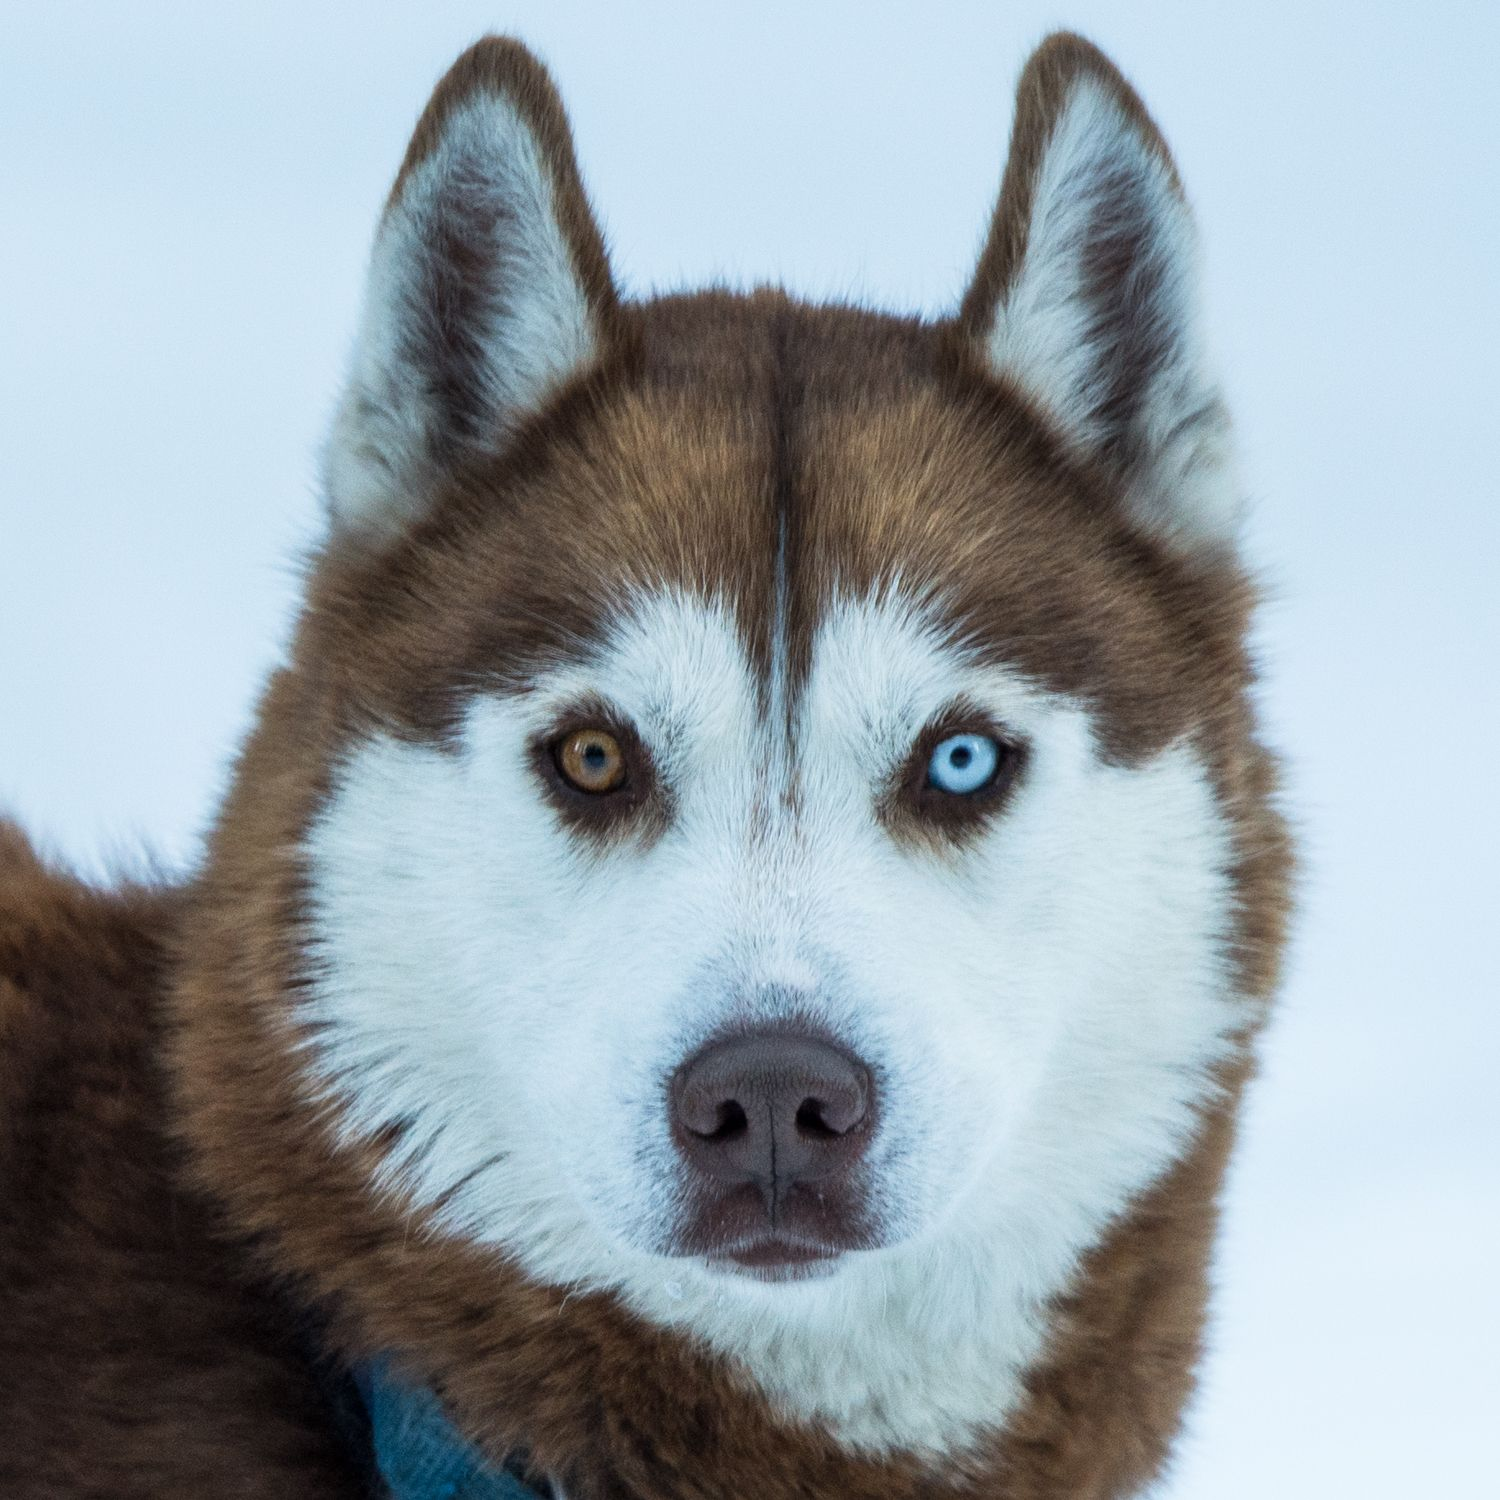 This Is One Of He Husky Dogs At Good Times Adventures In